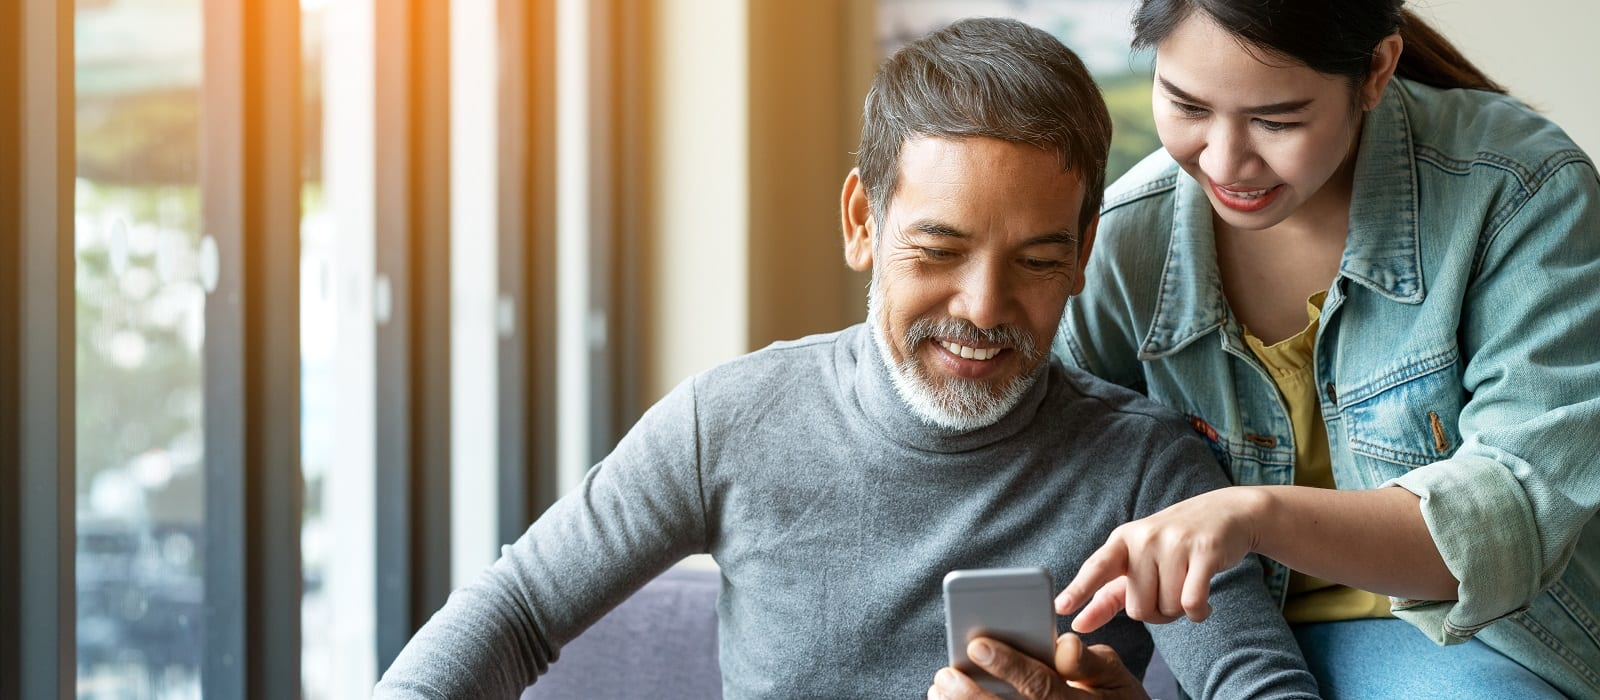 Smile attractive stylish short beard mature asian man using smartphone with young woman. Daughter teach asian old man or dad using internet social media network technology with digital gadget at home.